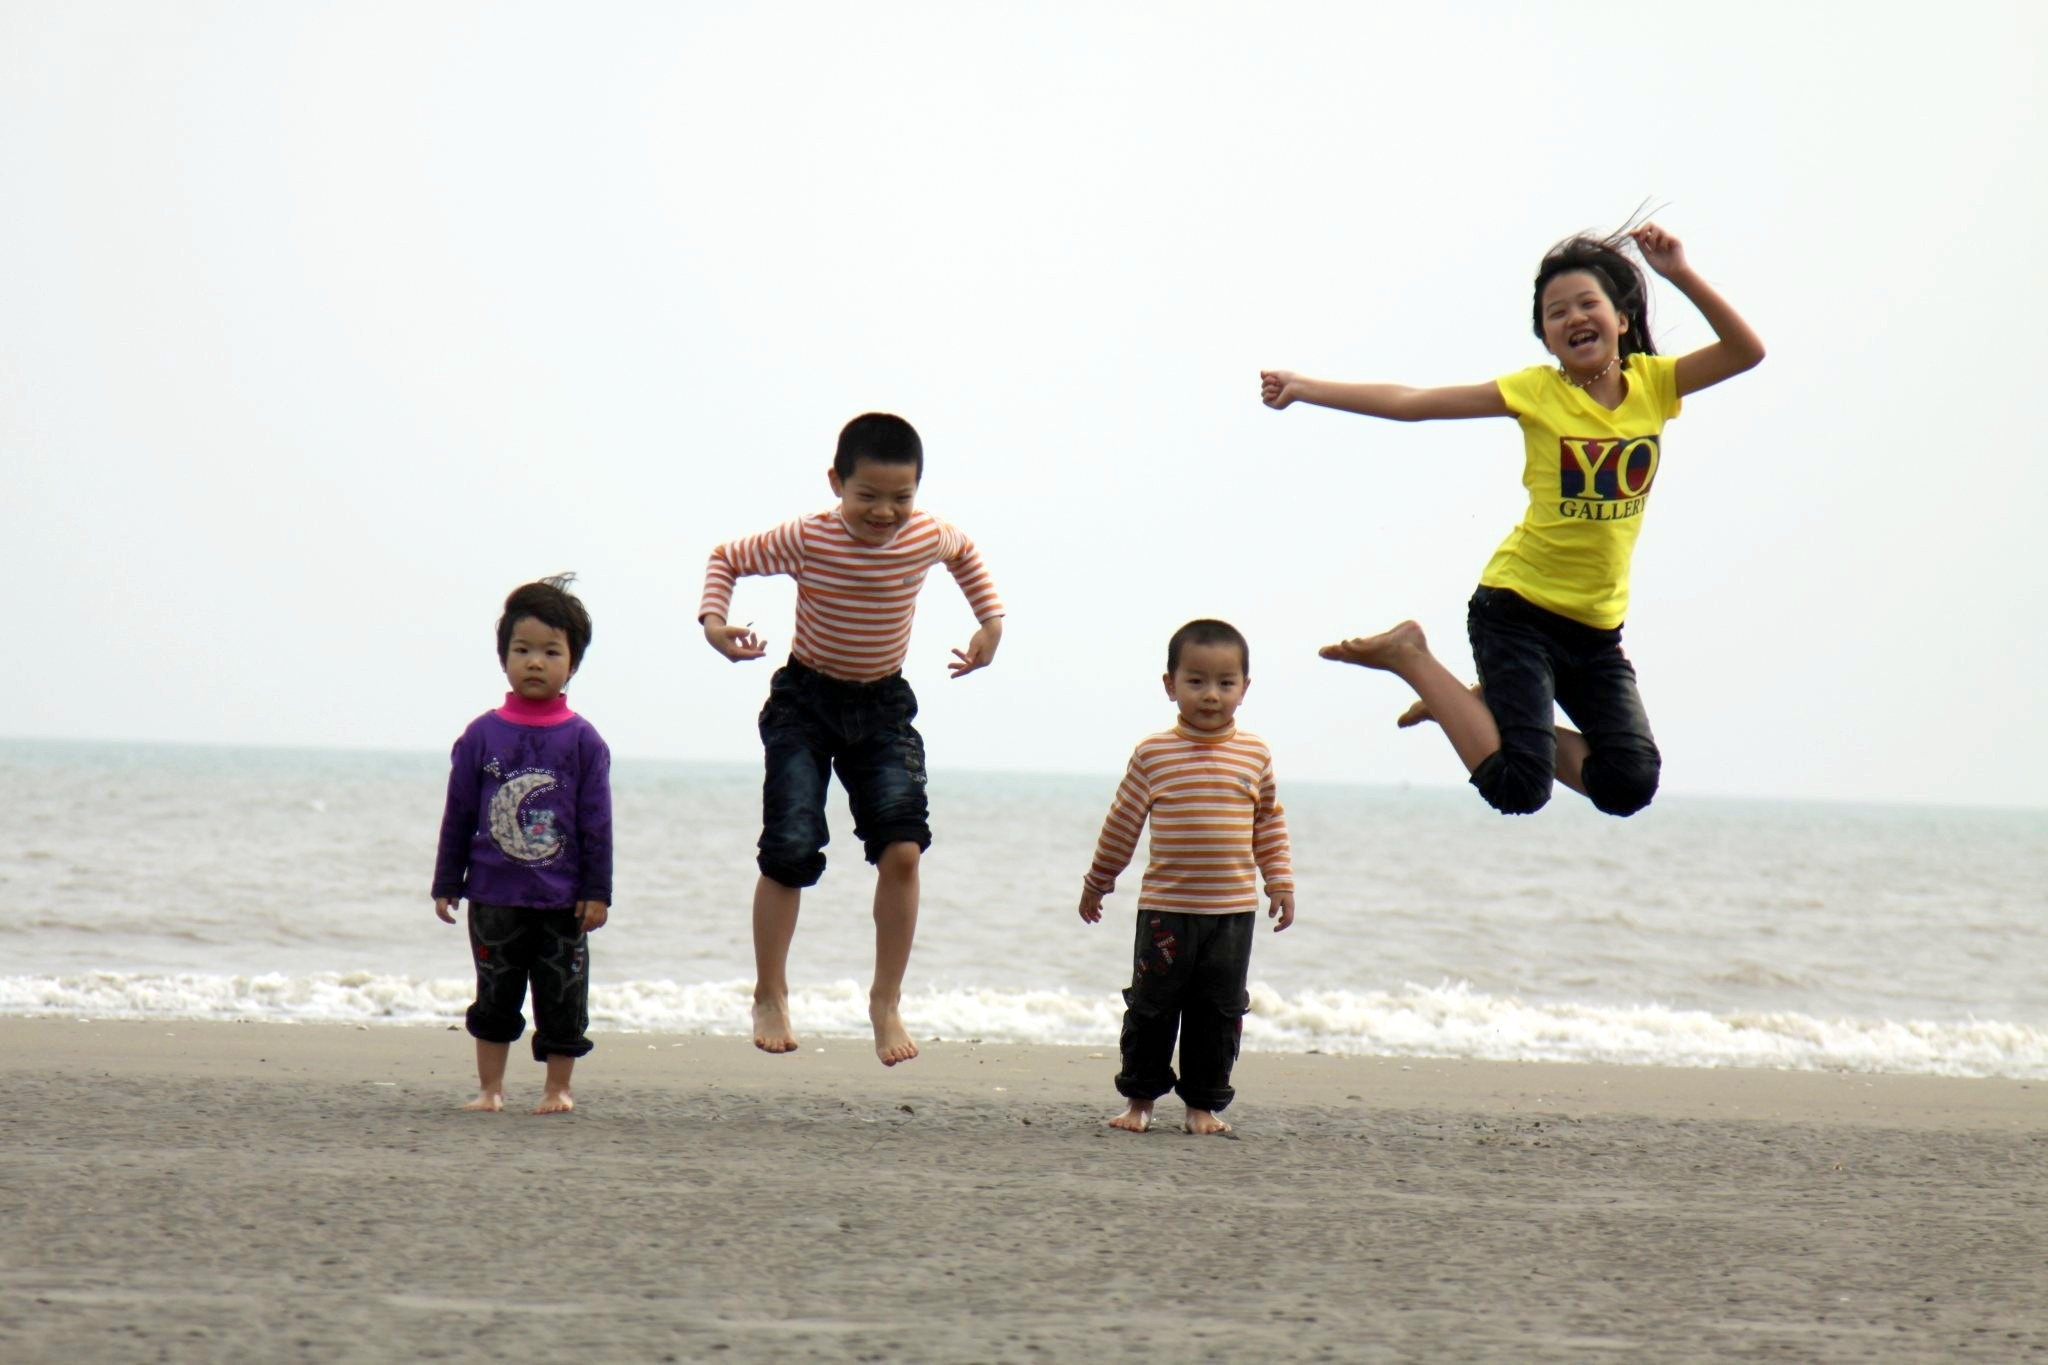 Photograph Fun on the beach  by Do Ngoc Nam on 500px